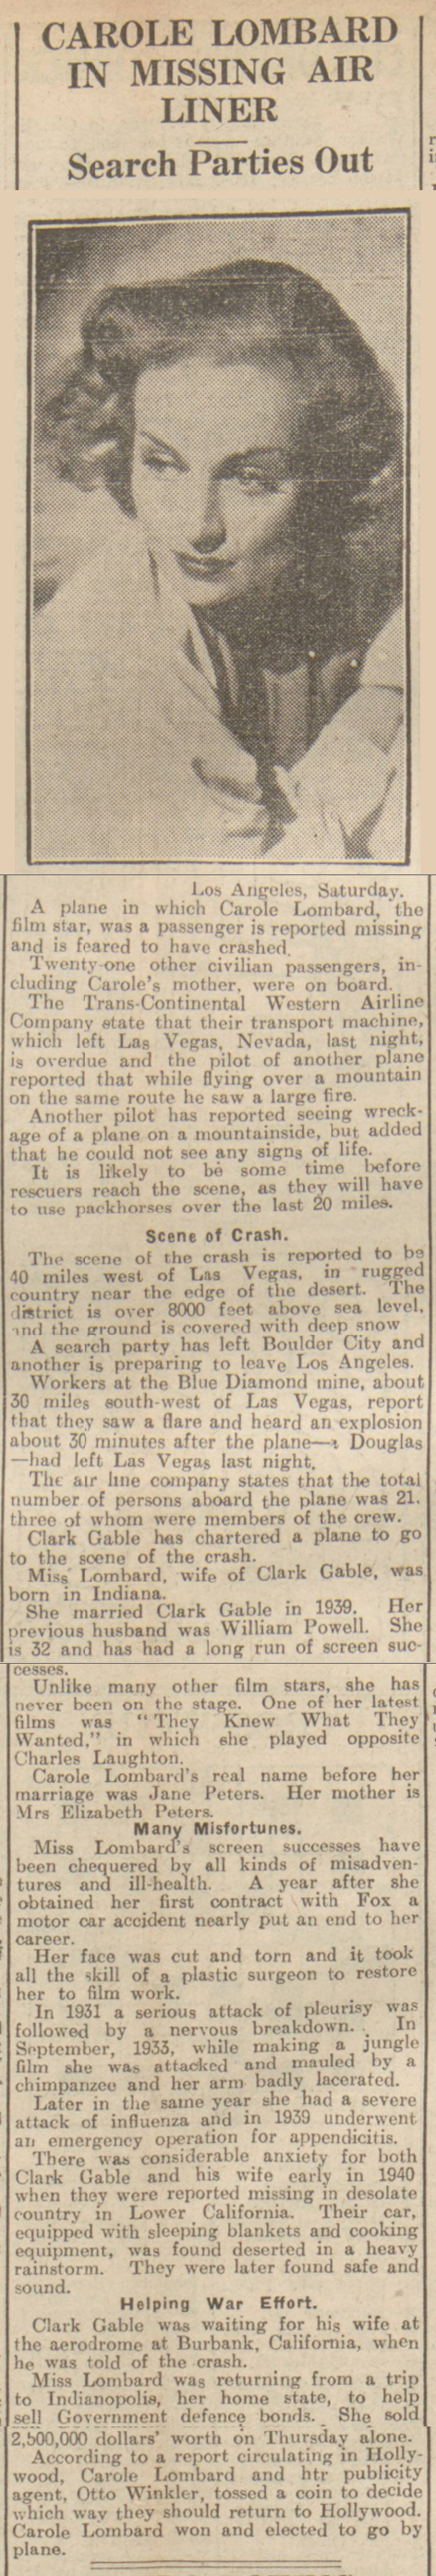 newspaper story about the death of carole lombard